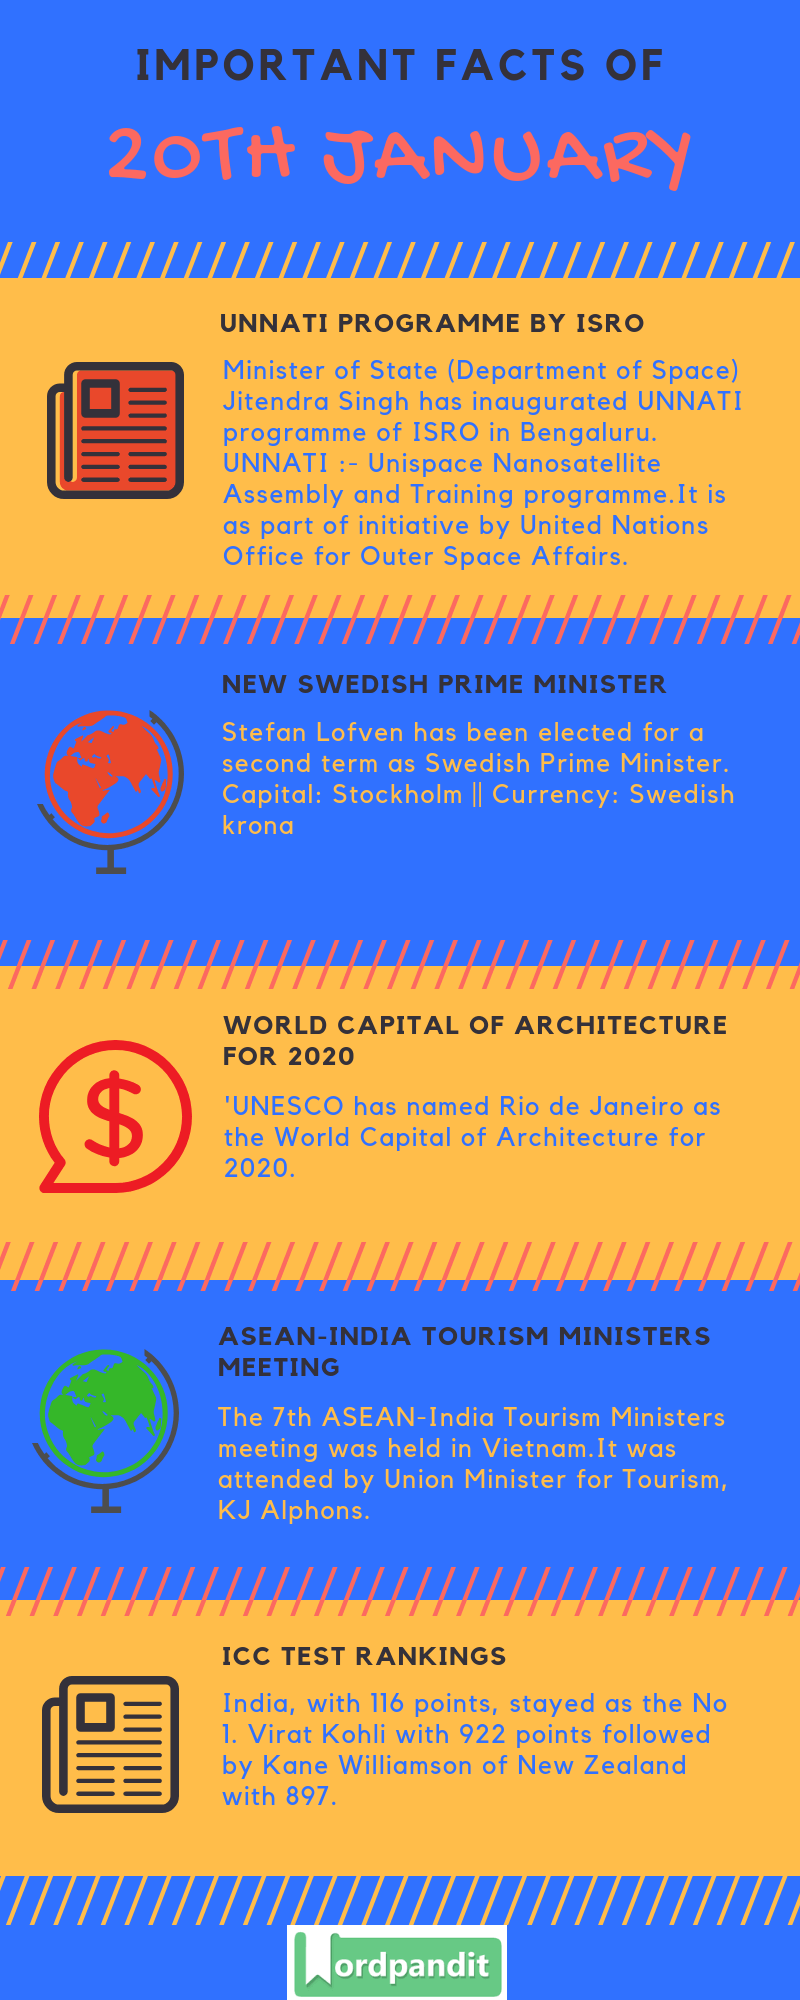 Daily Current Affairs 20 January 2019 Current Affairs Quiz 20 January 2019 Current Affairs Infographic